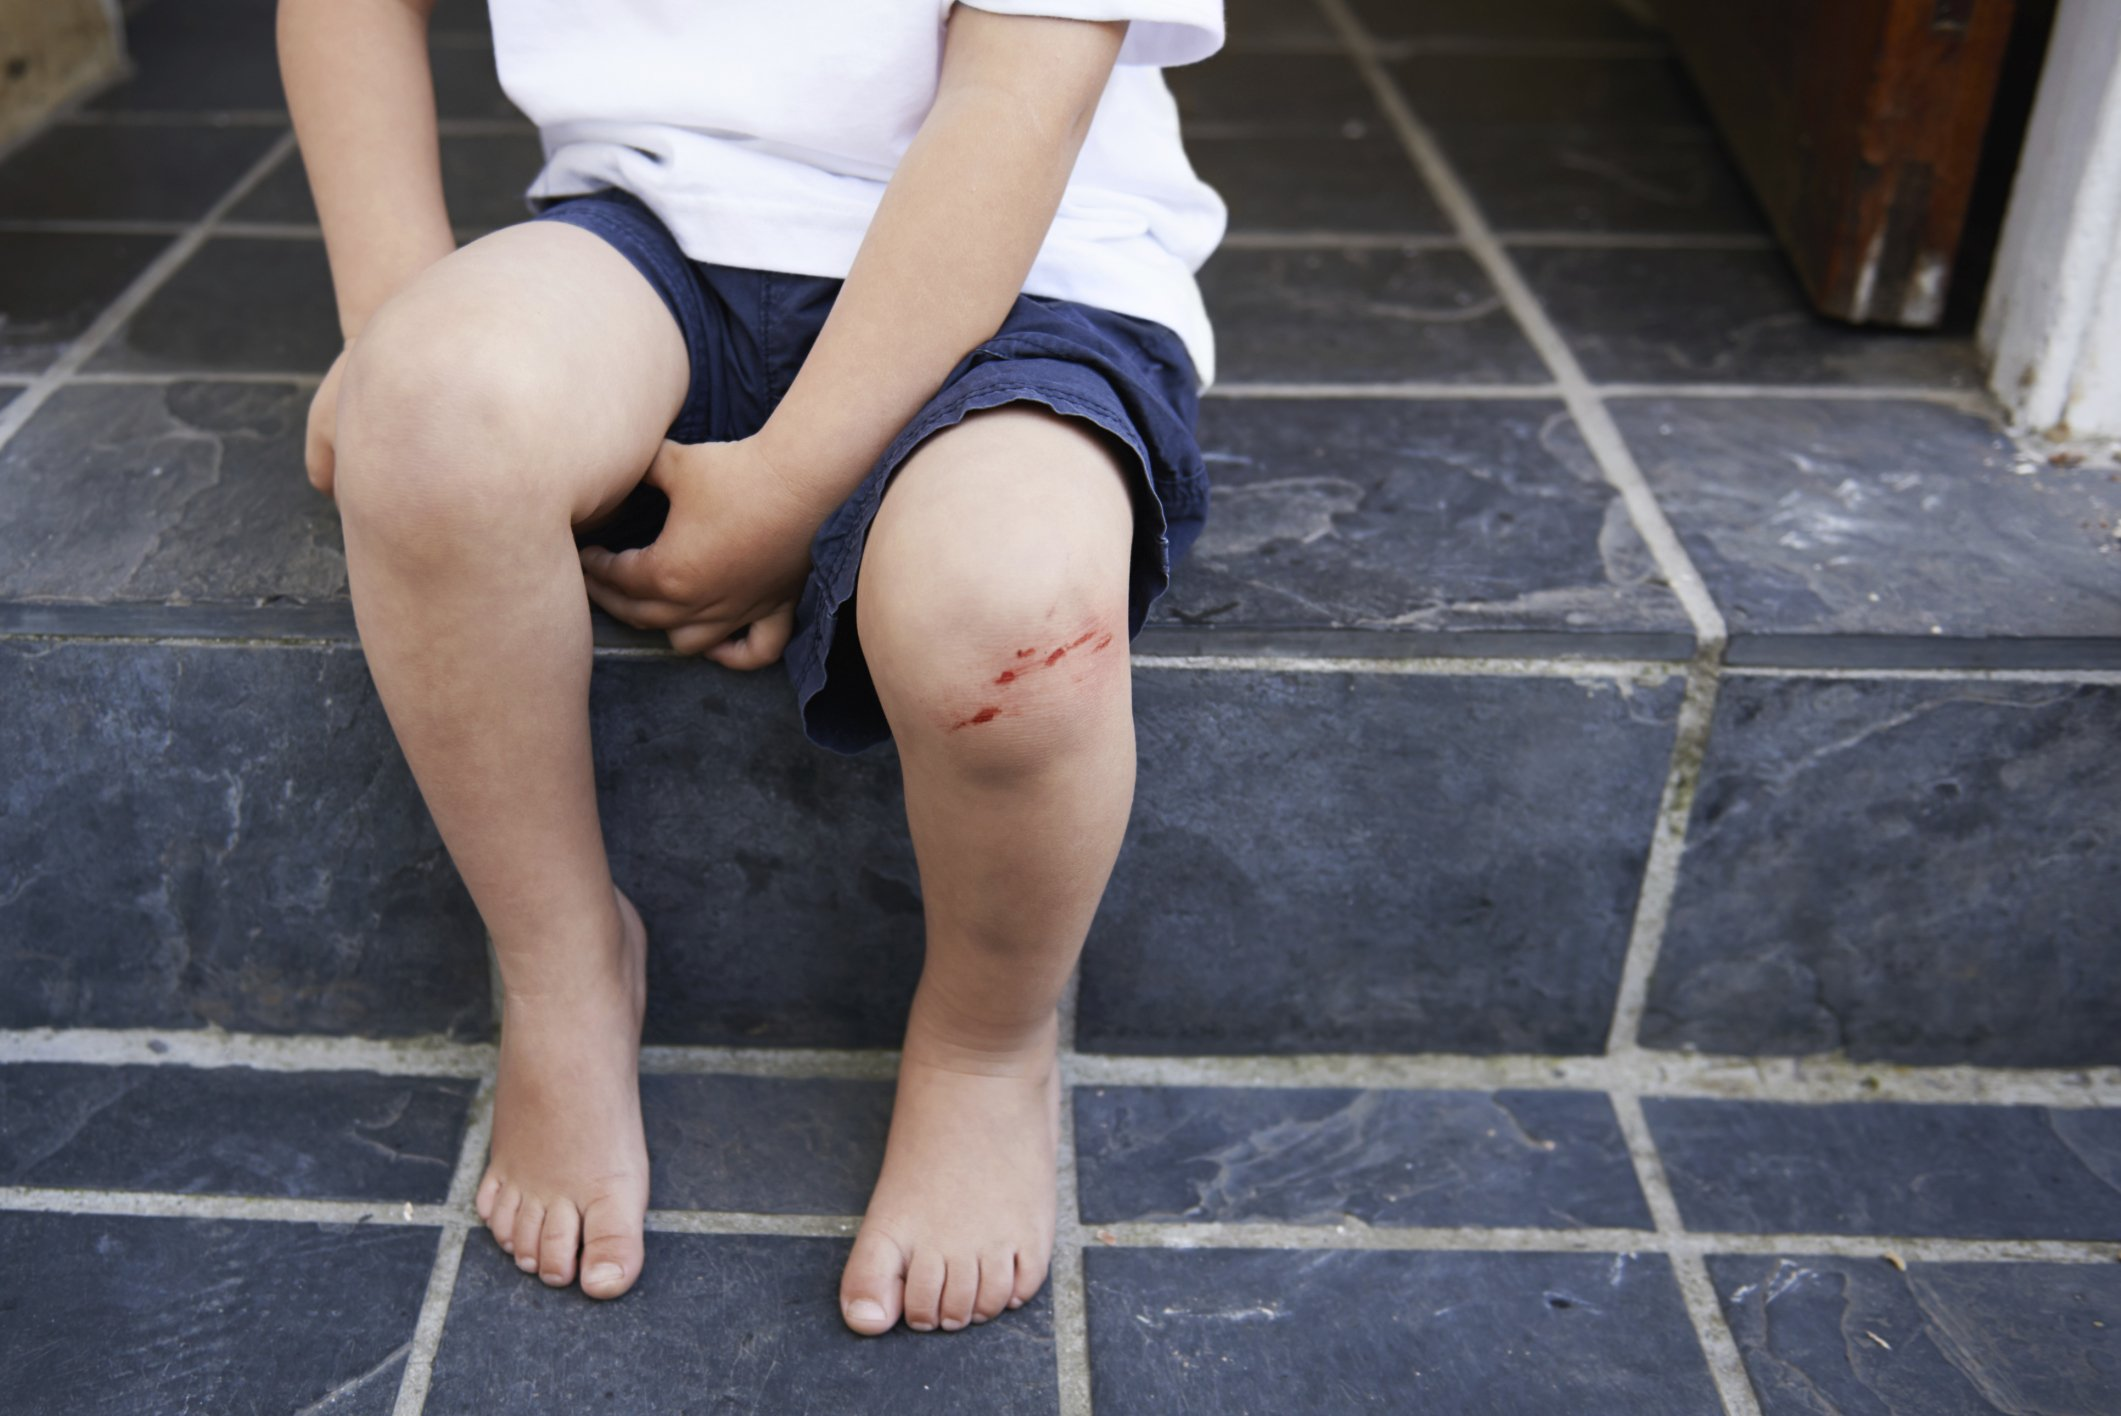 Paralysis In The Child's Right Leg Is More Than 1 Year Old?